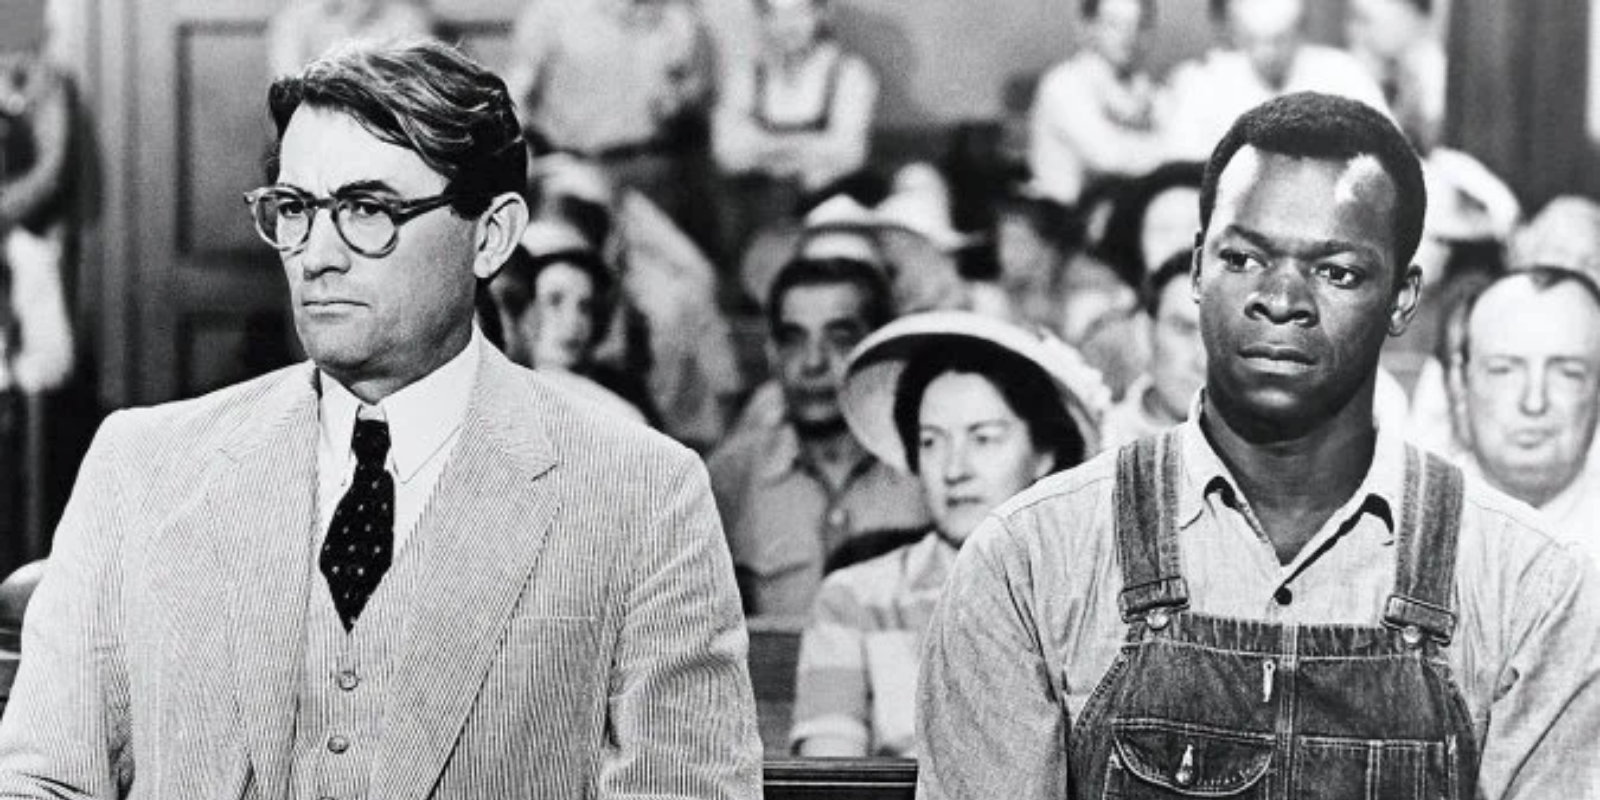 BC teacher suspended after showing class 'To Kill A Mockingbird' film